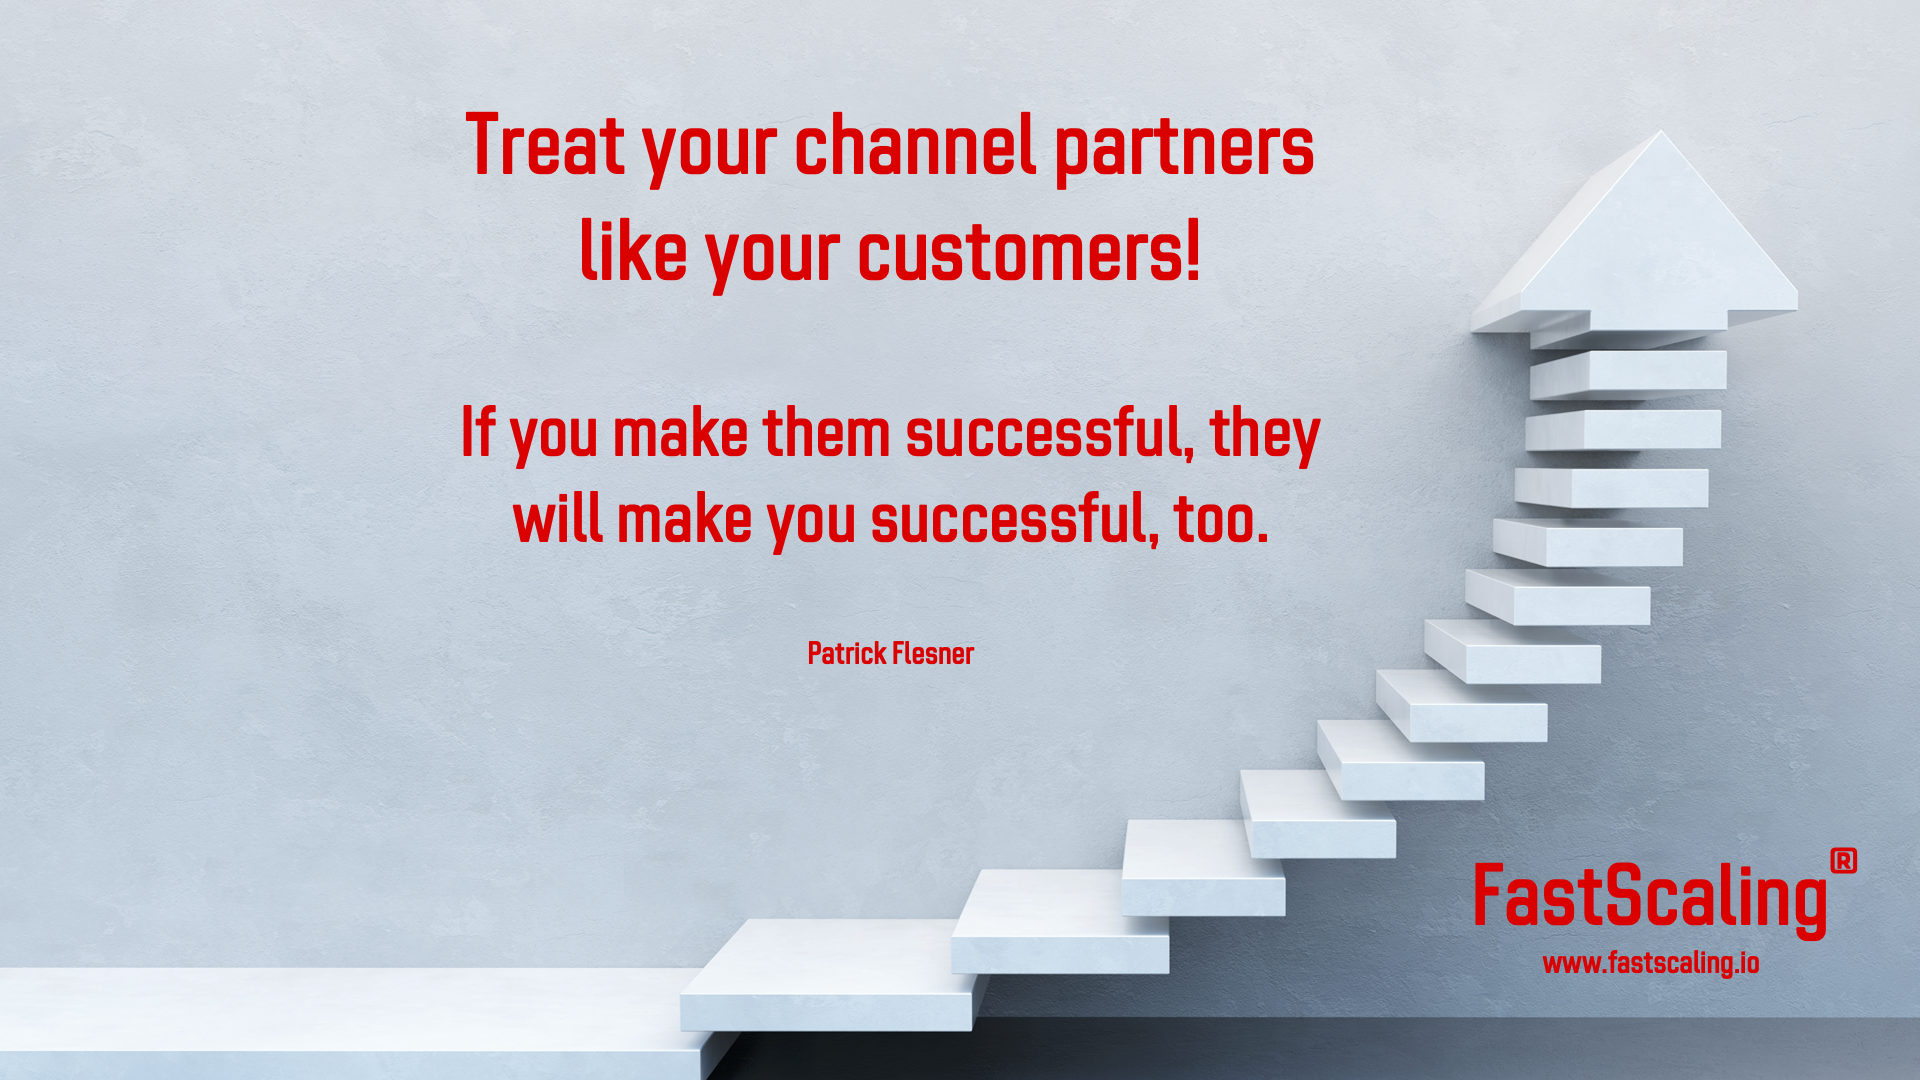 Treat Your Channel Partners like Your Customers